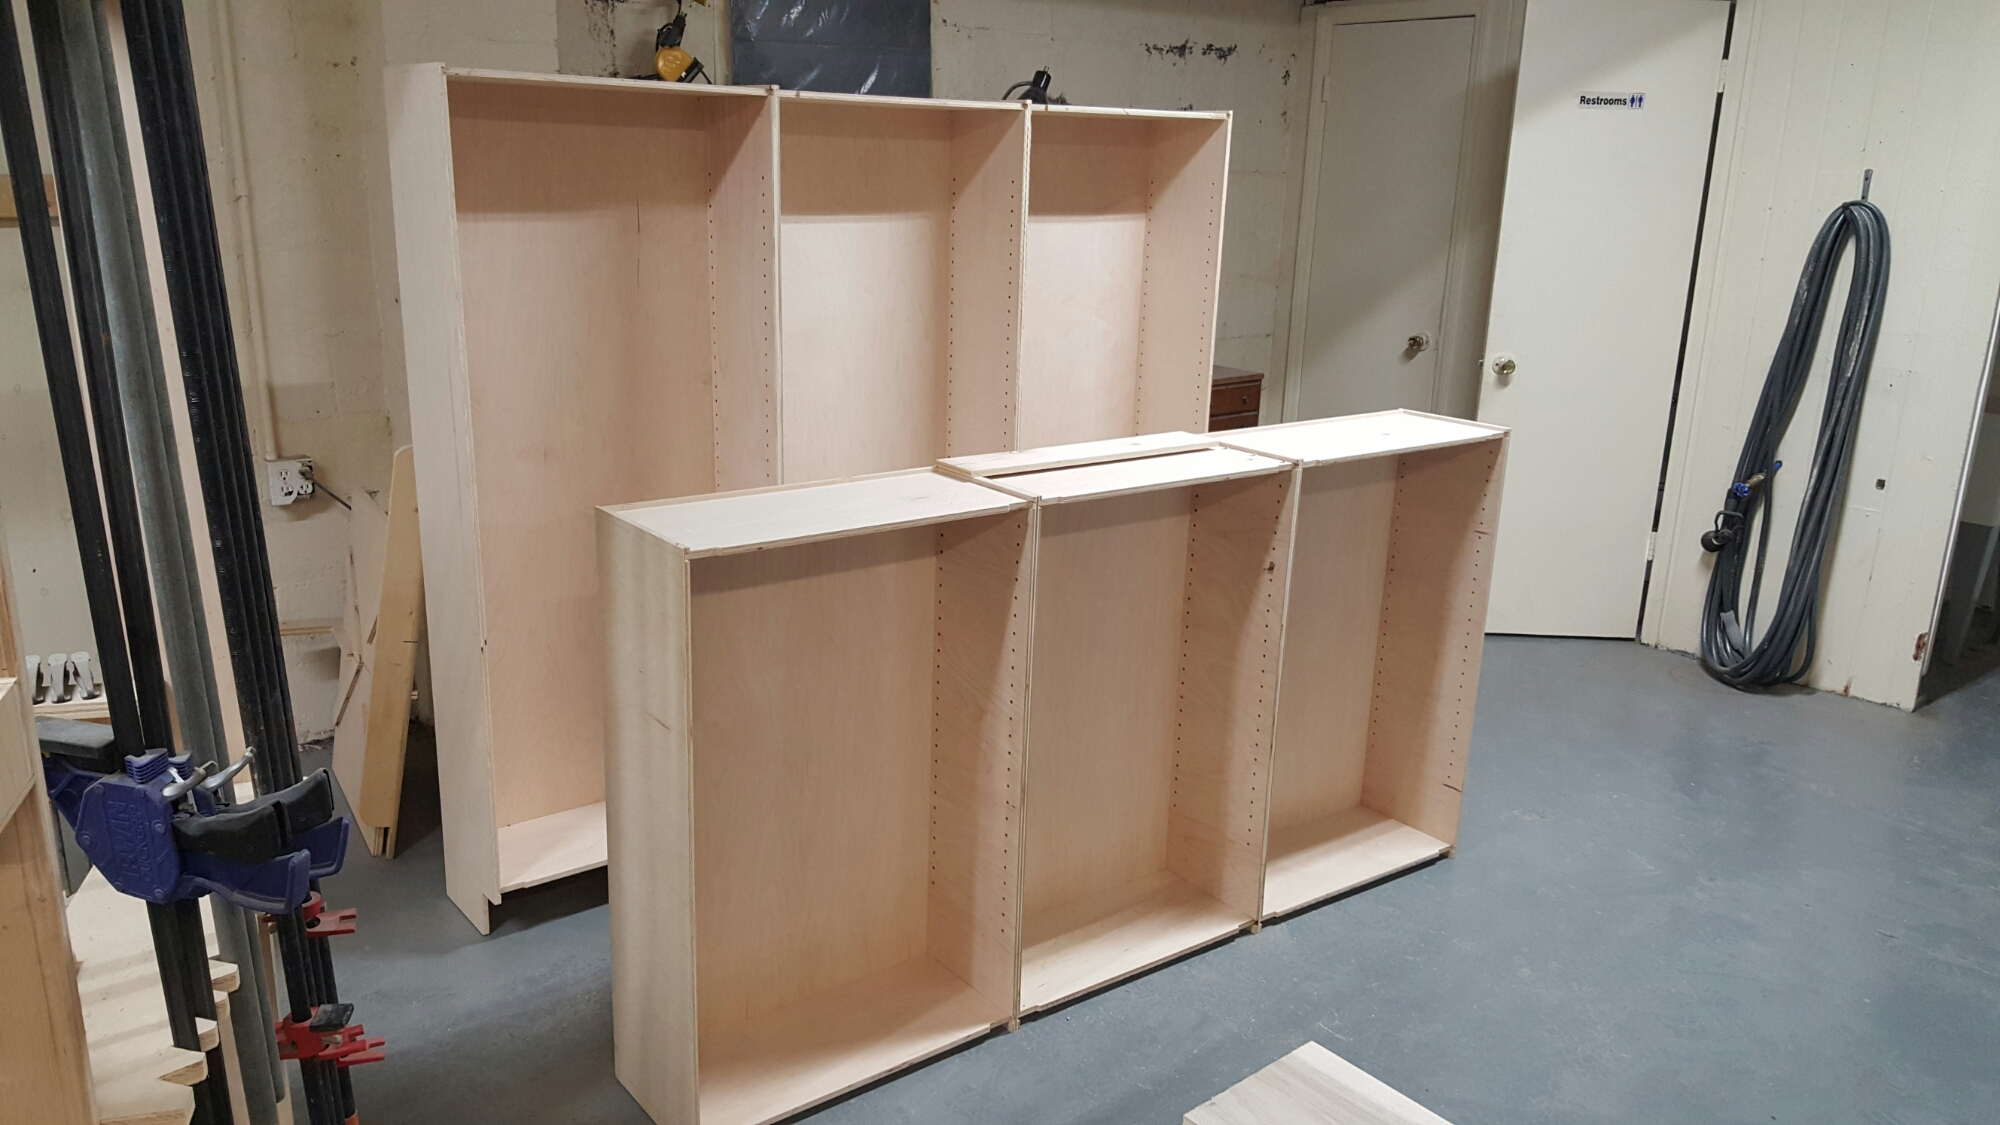 Starting with custom built pantry cabinets